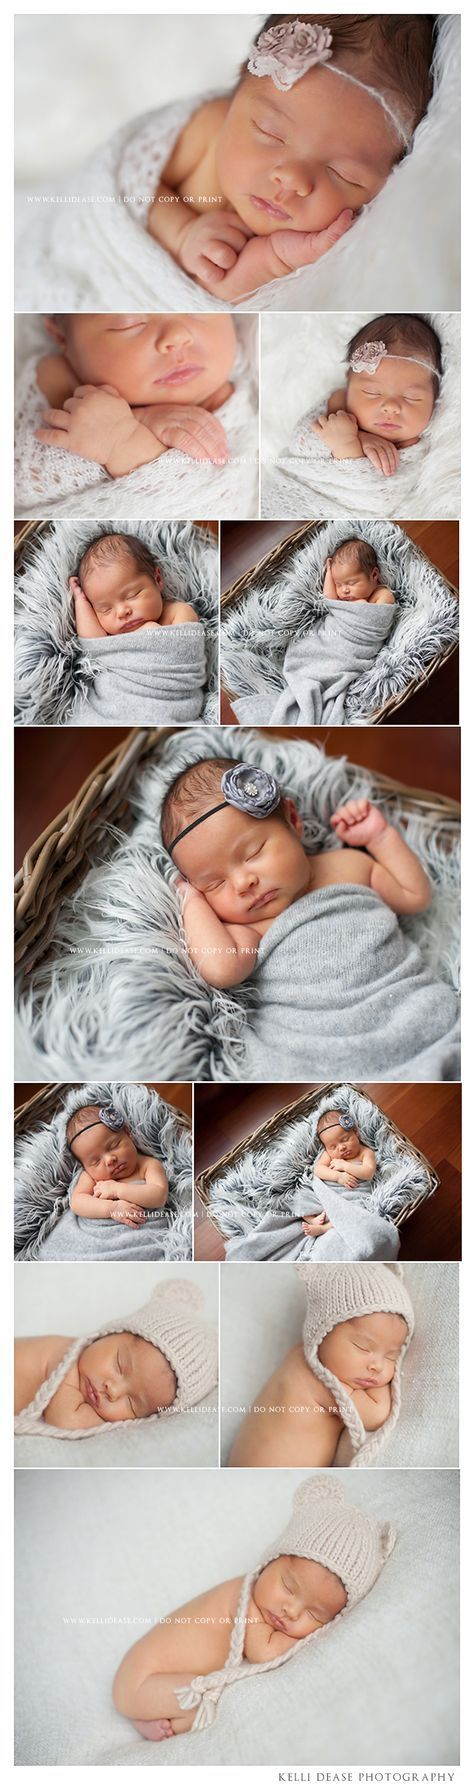 Great posing ideas for newborn photography session. CT best newborn photographer. Repin & Like. Thank you . Listen to Noel songs. Noelito Flow.